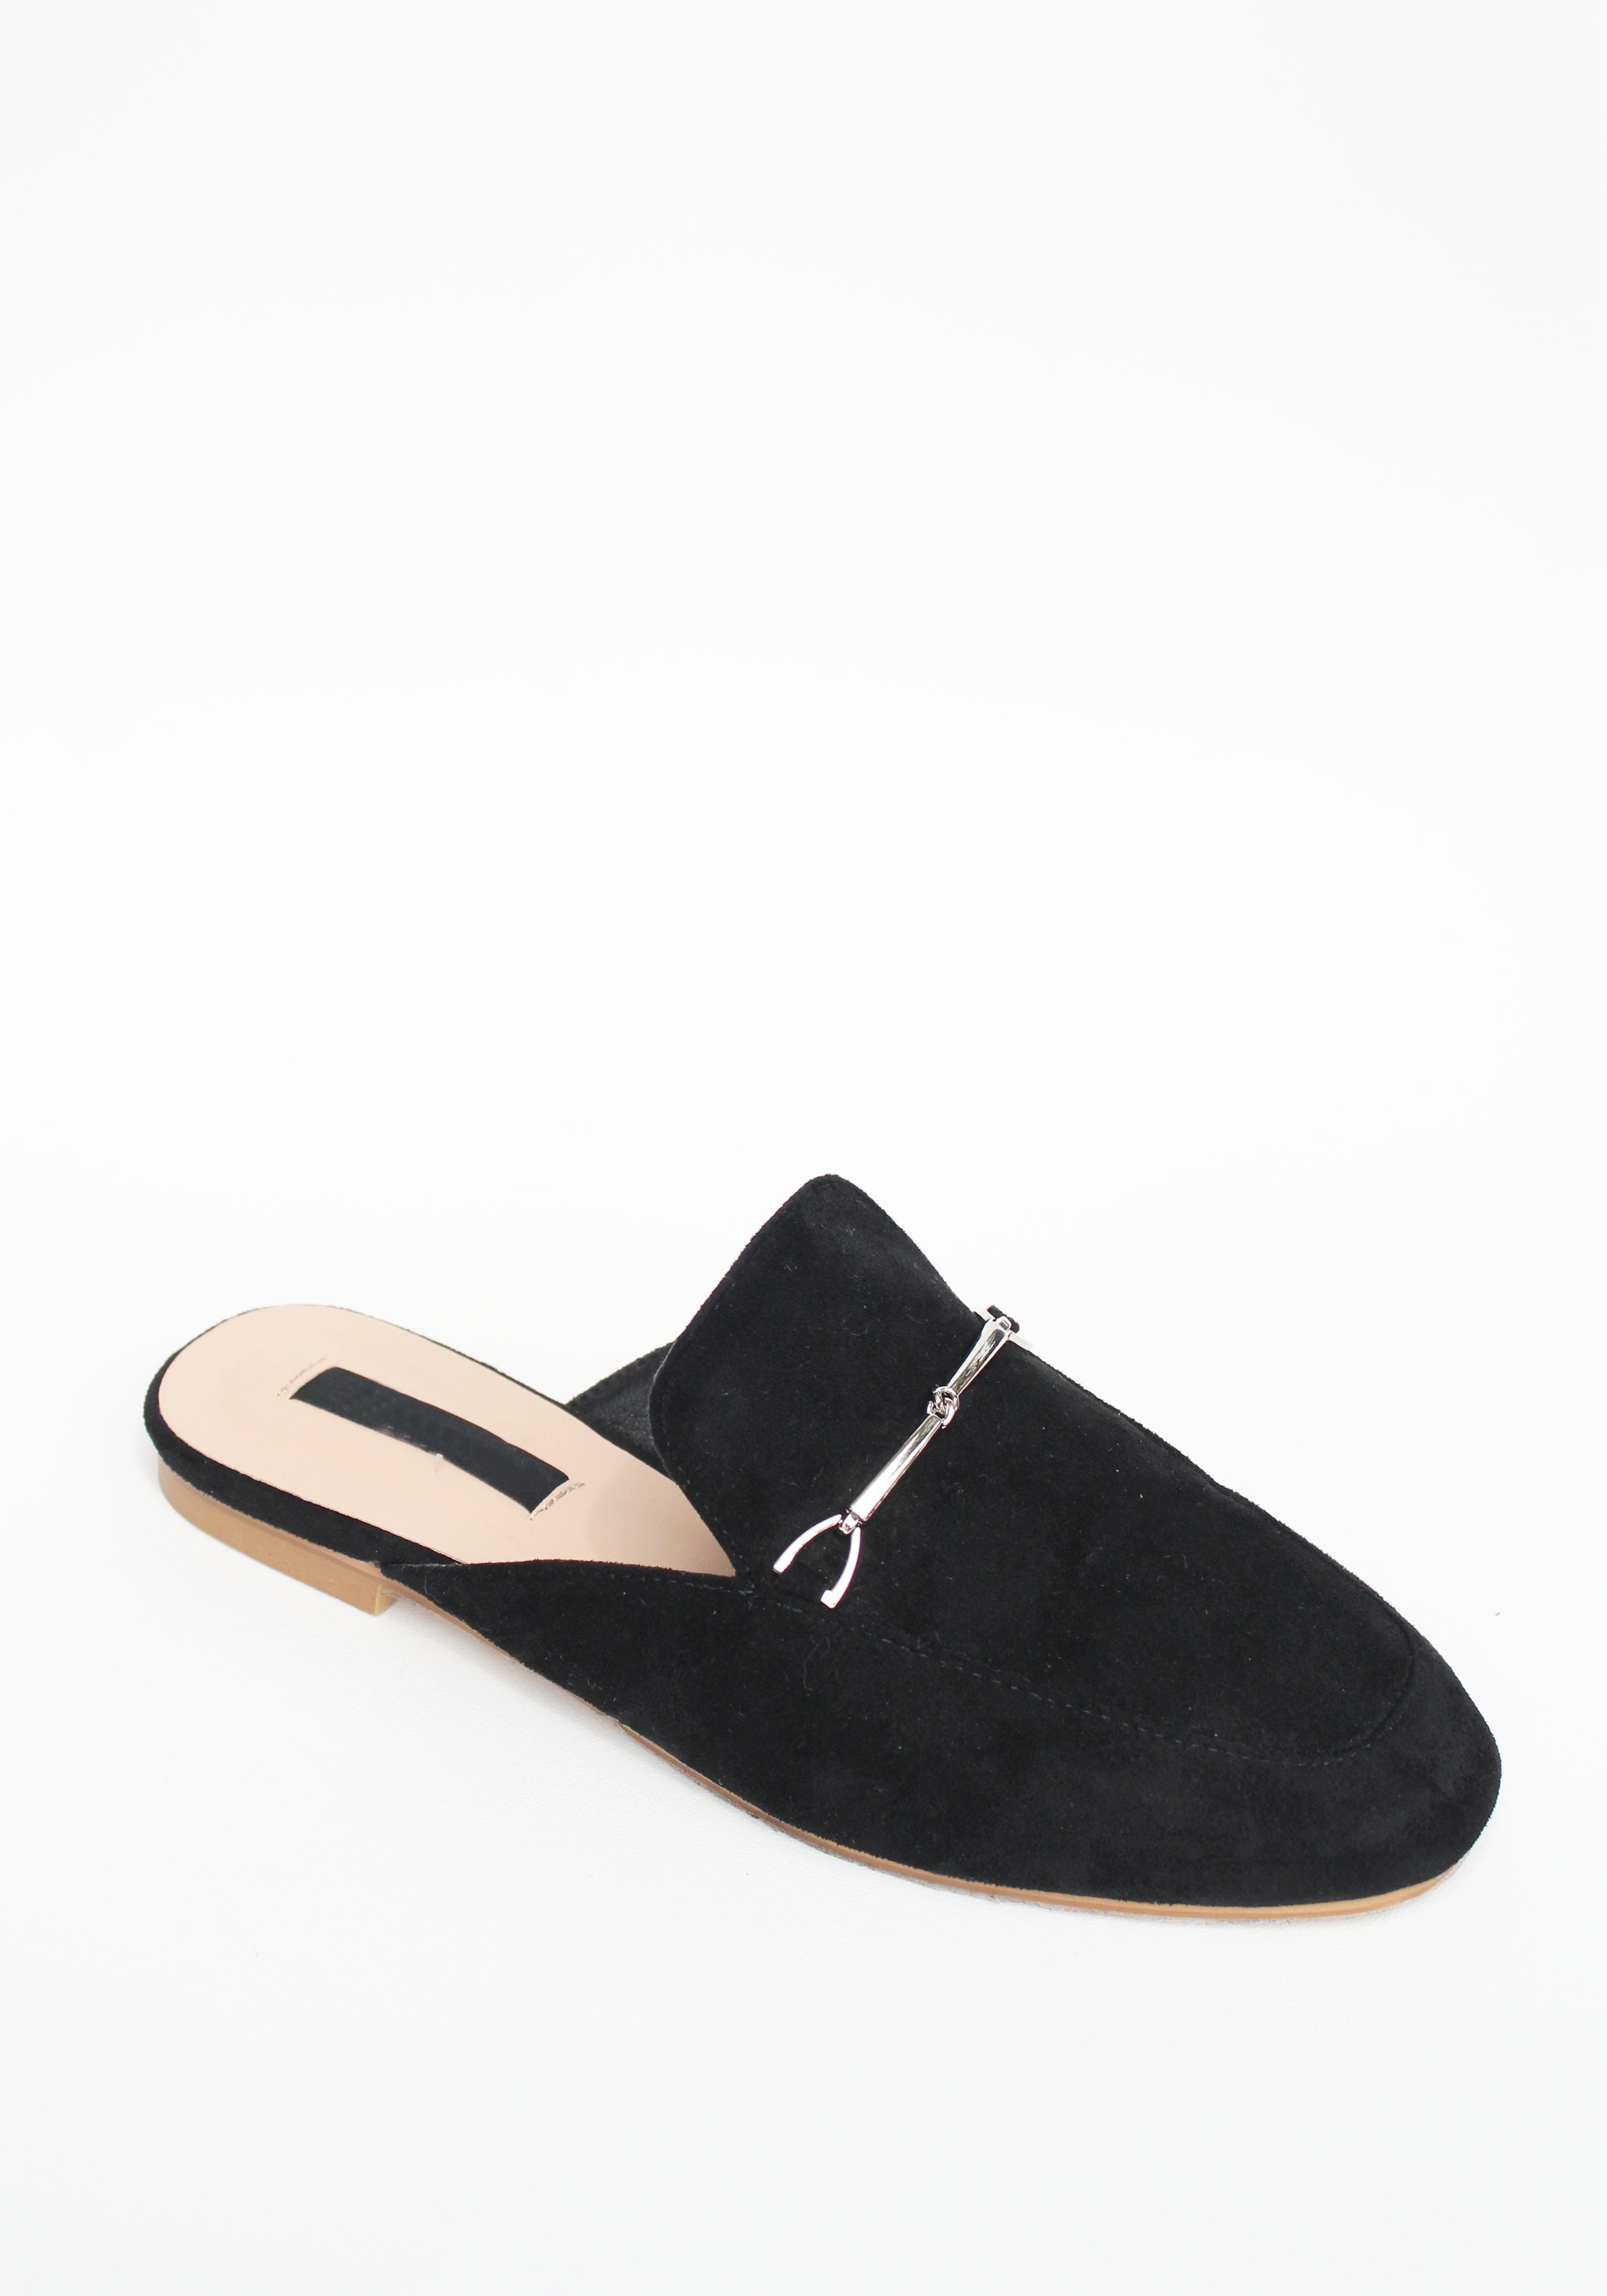 ADRIENN Mule Loafers - Black